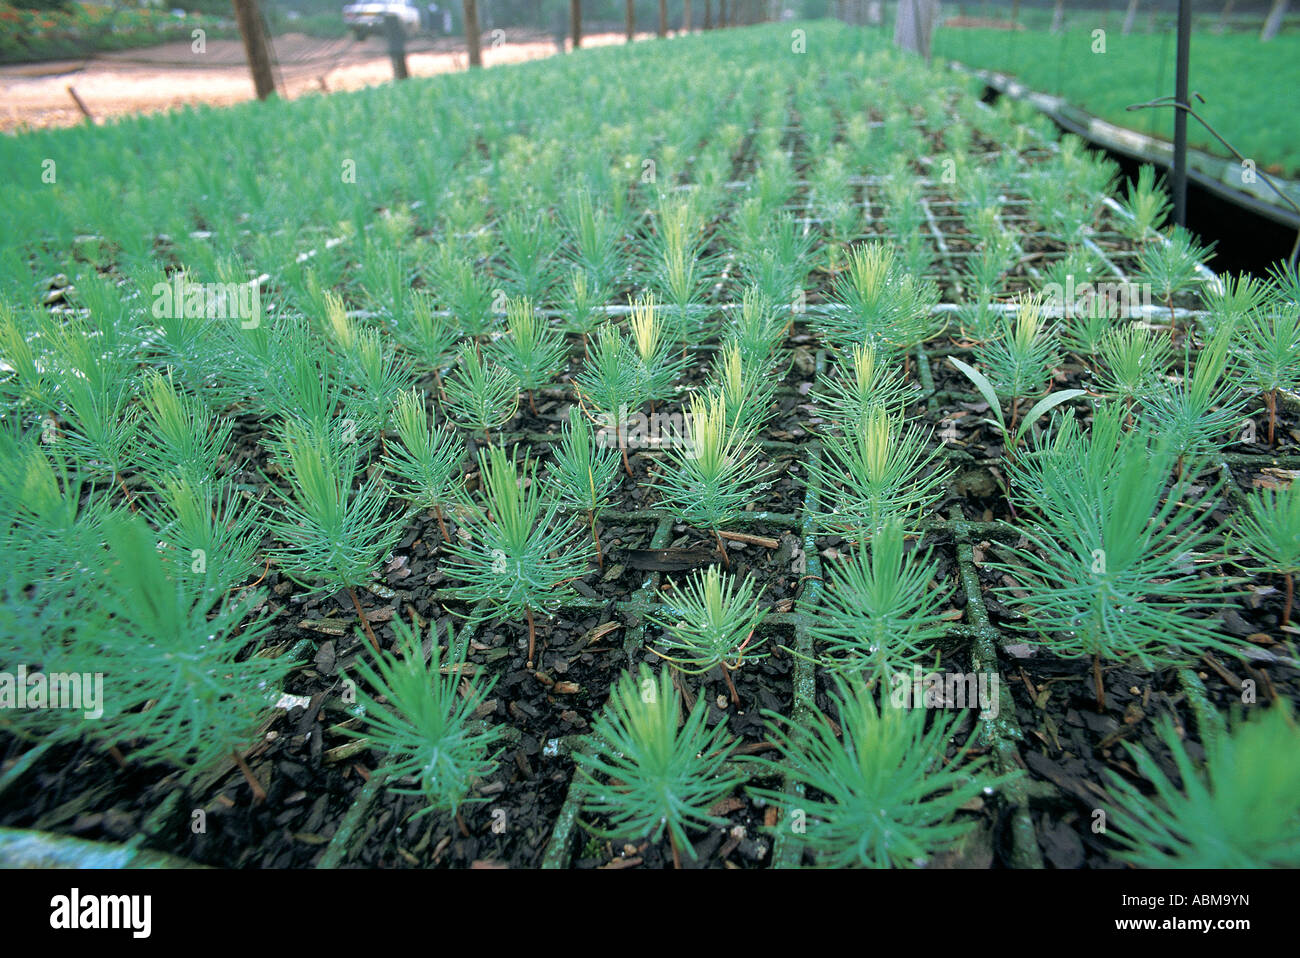 Pine tree seedlings South Africa - Stock Image